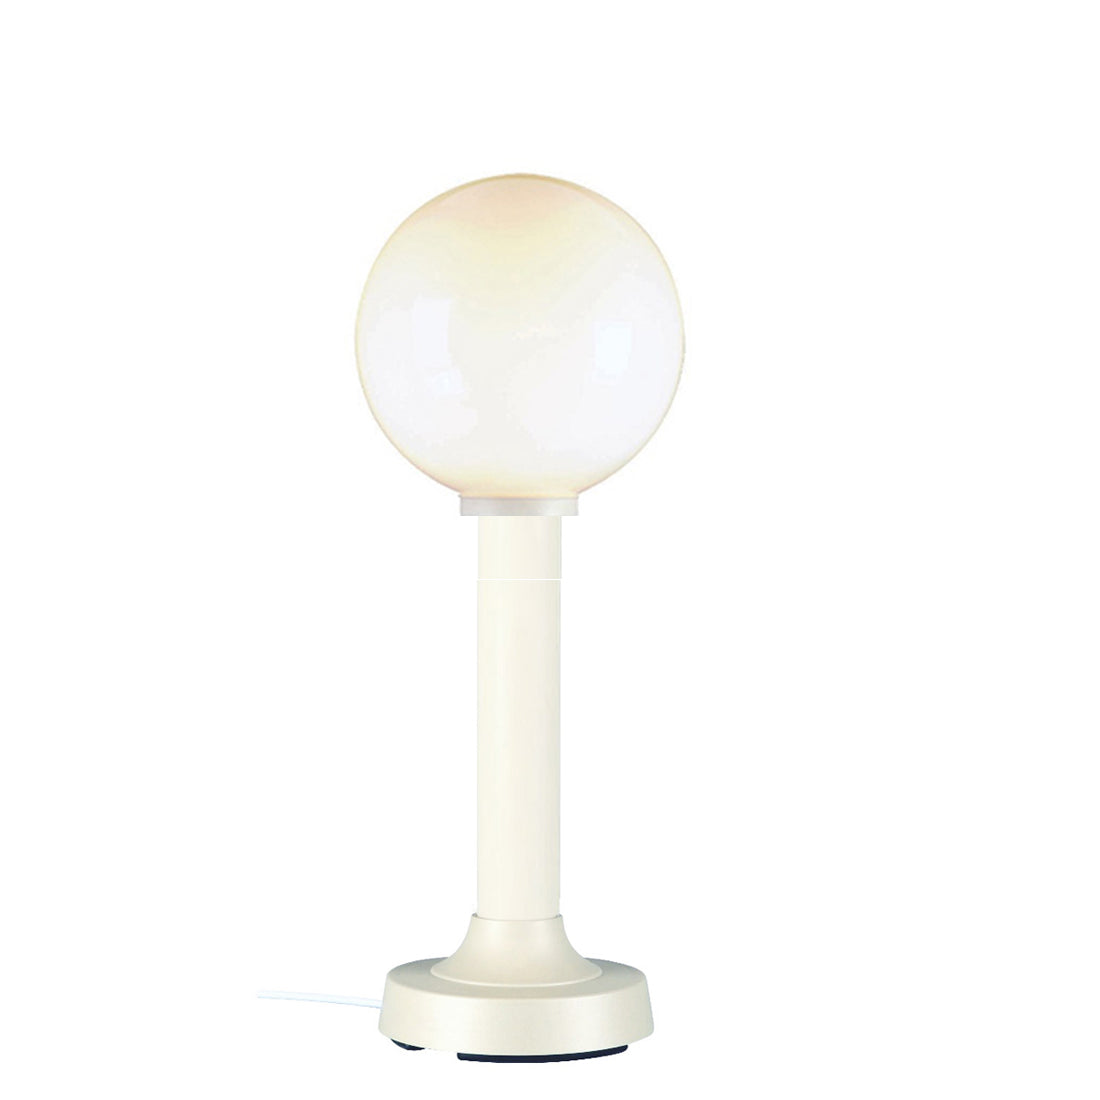 "Moonlite 35"" Table Lamp 08721 with 3"" white tube body and white globe"